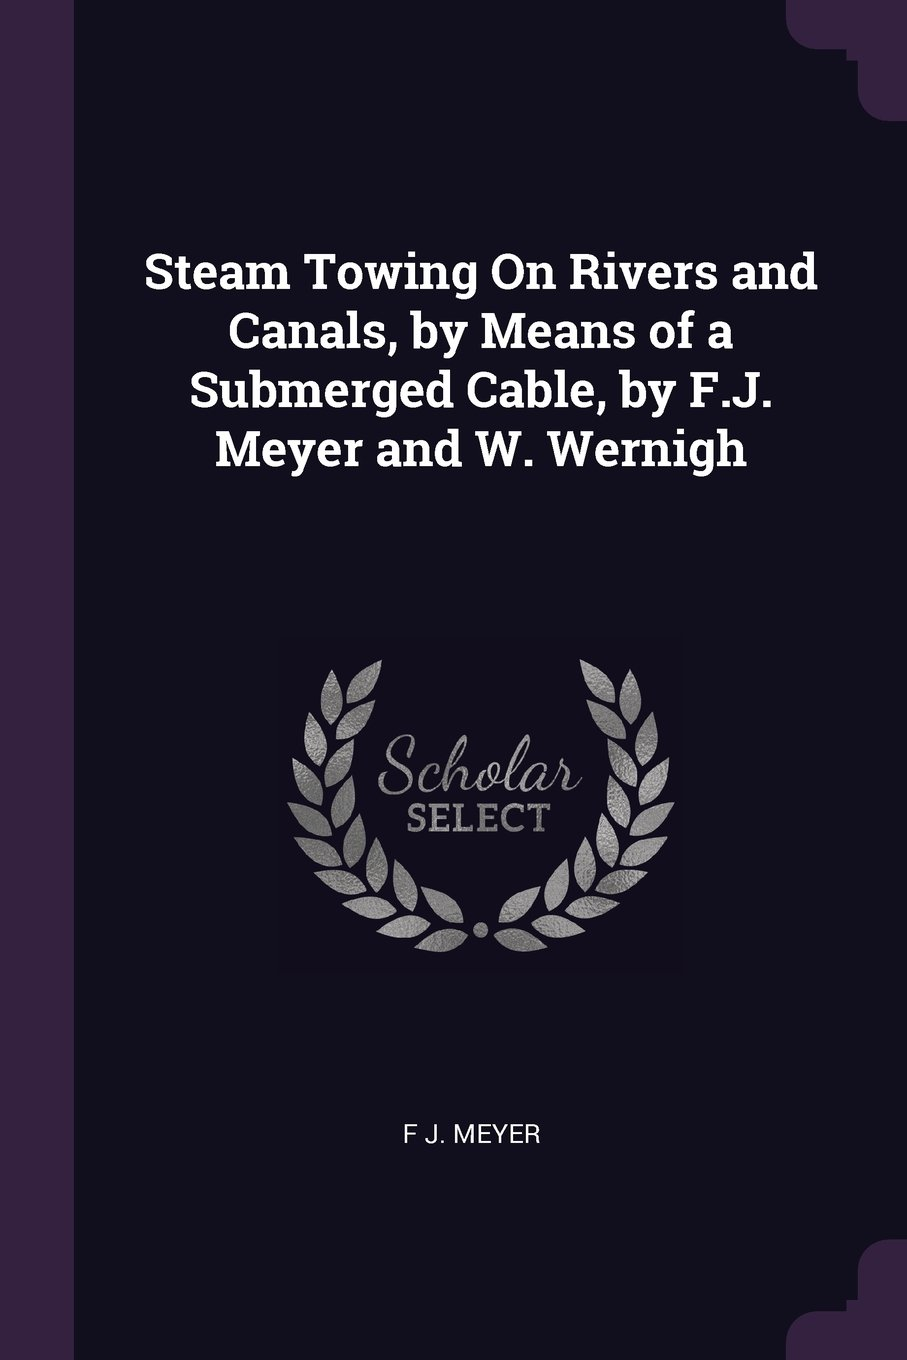 Steam Towing On Rivers and Canals, by Means of a Submerged Cable, by F.J. Meyer and W. Wernigh pdf